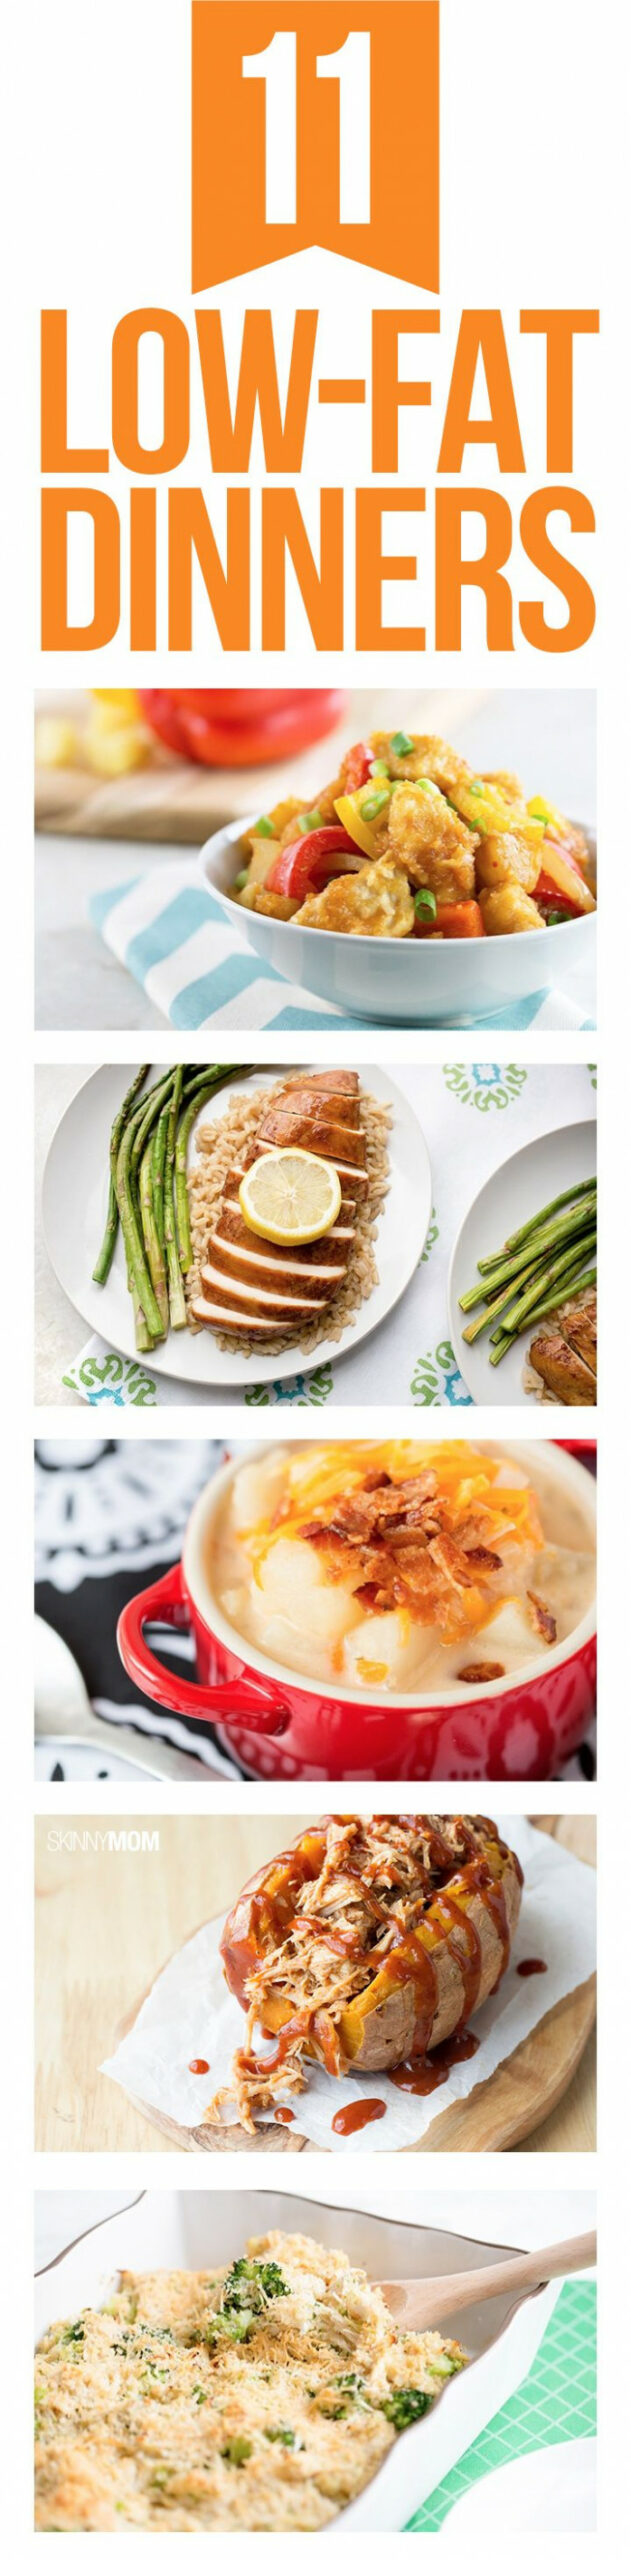 20 Of the Best Ideas for Low Cholesterol Dinner Recipes ..